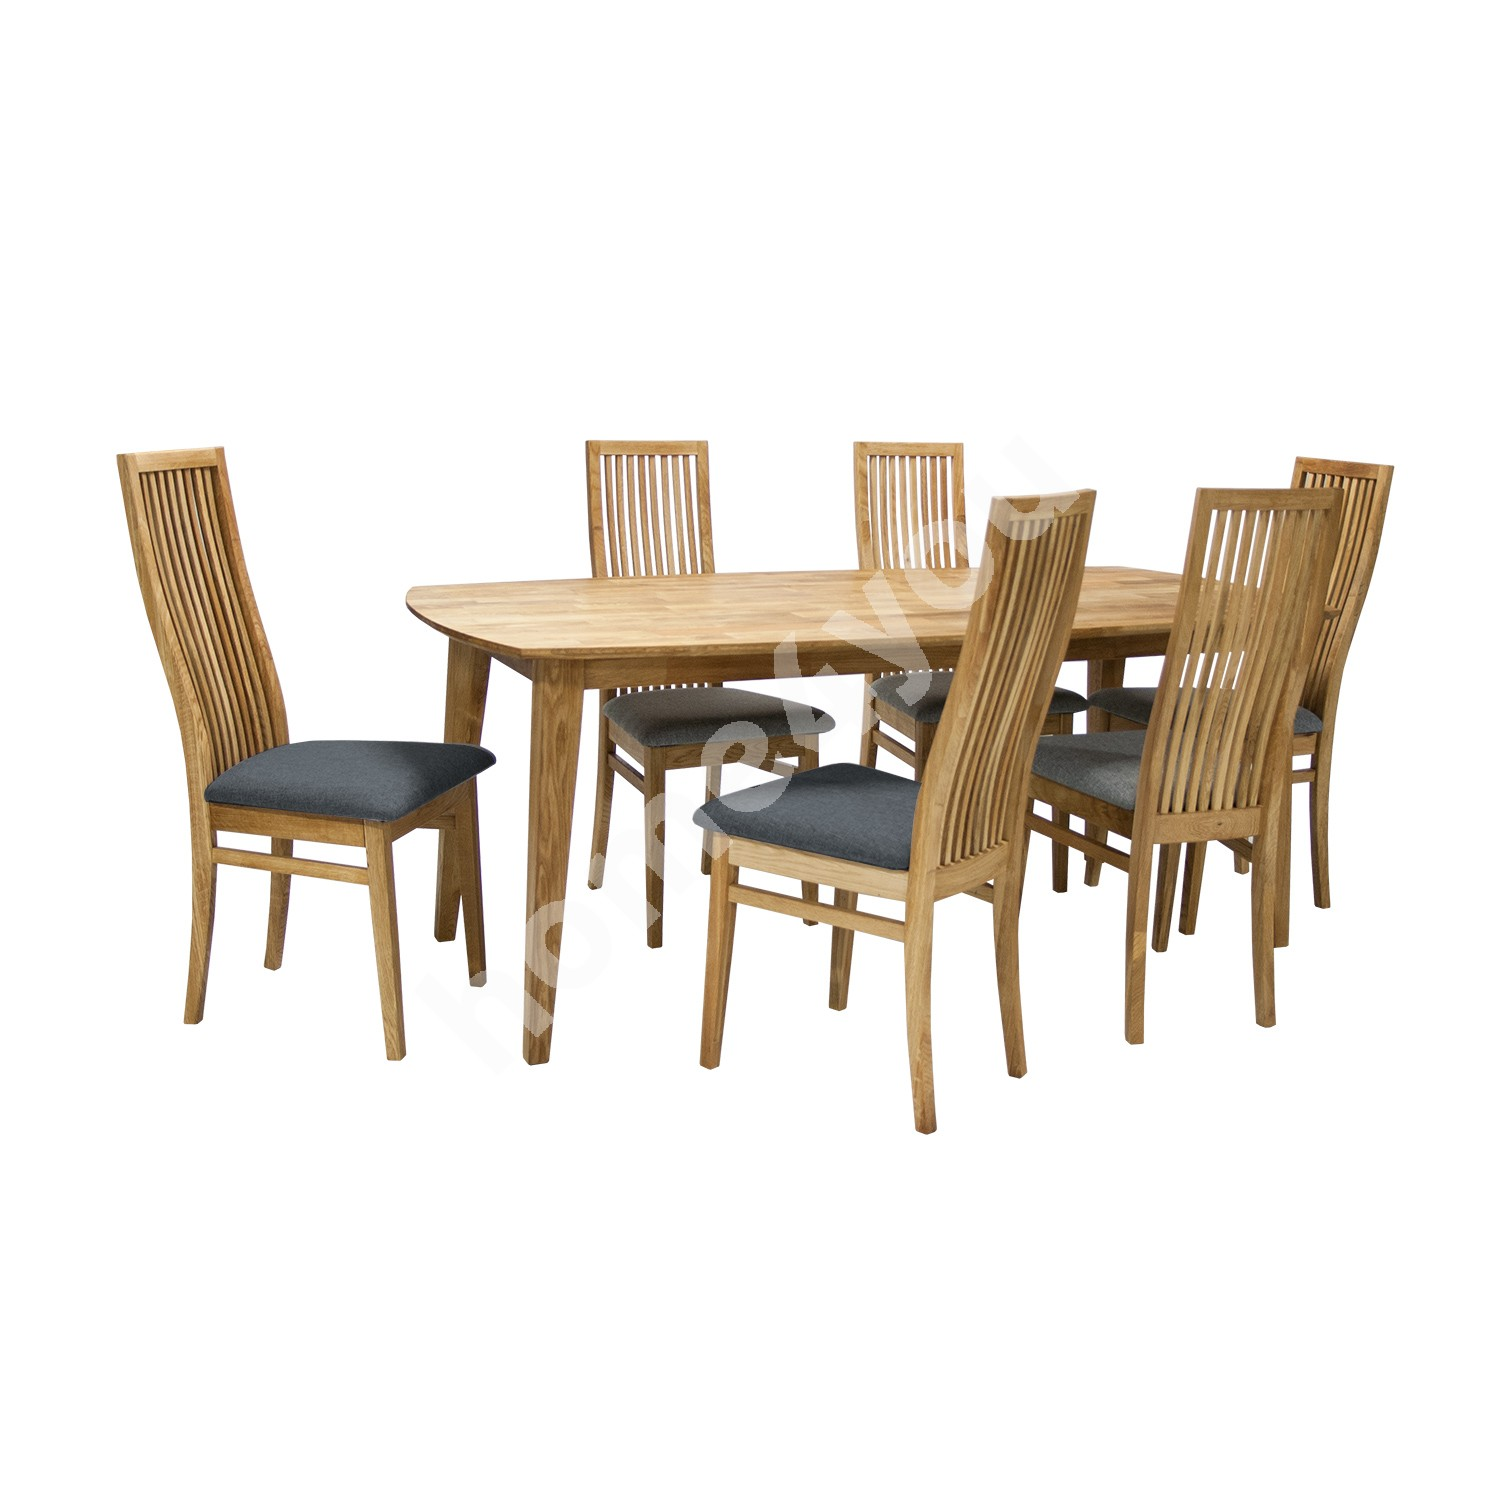 Dining set RETRO with 6-chairs (19923), 190x90xH75cm, wood: oak, finish: oiled